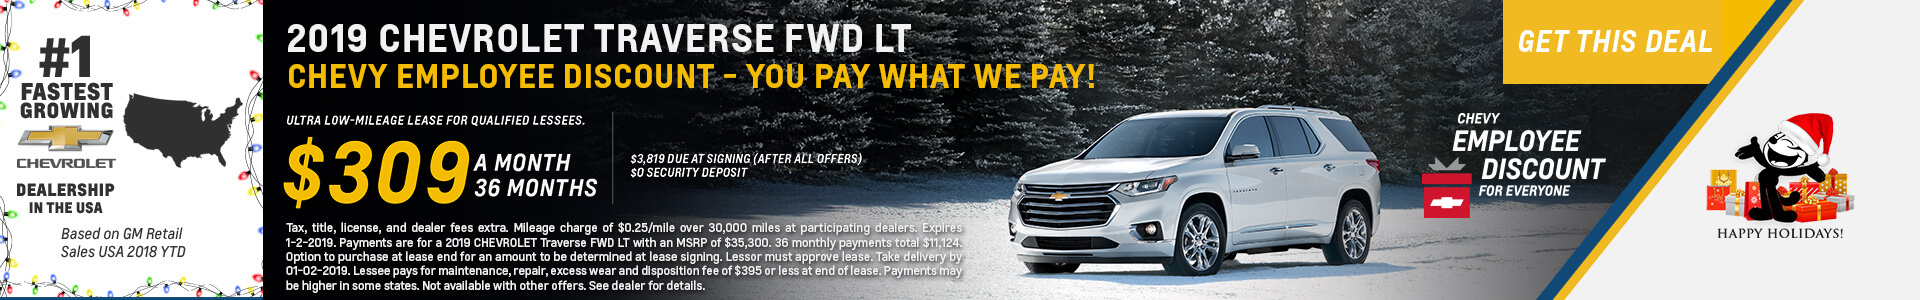 Chevrolet Traverse $309 Lease